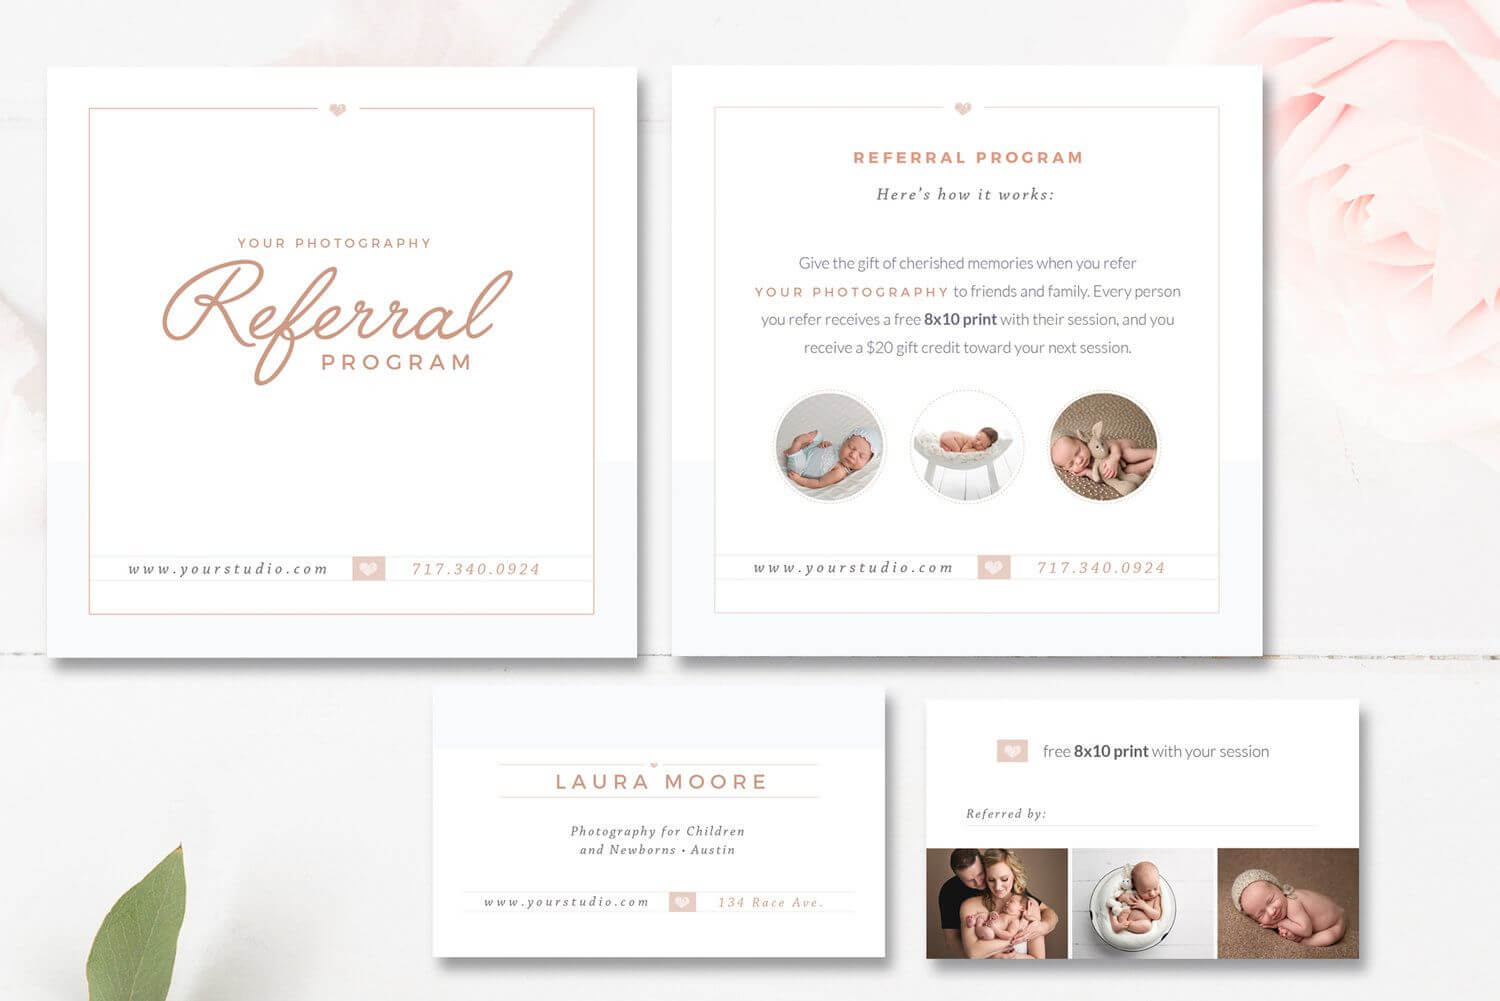 Photography Referral Card Templates, Referral Program Regarding Photography Referral Card Templates